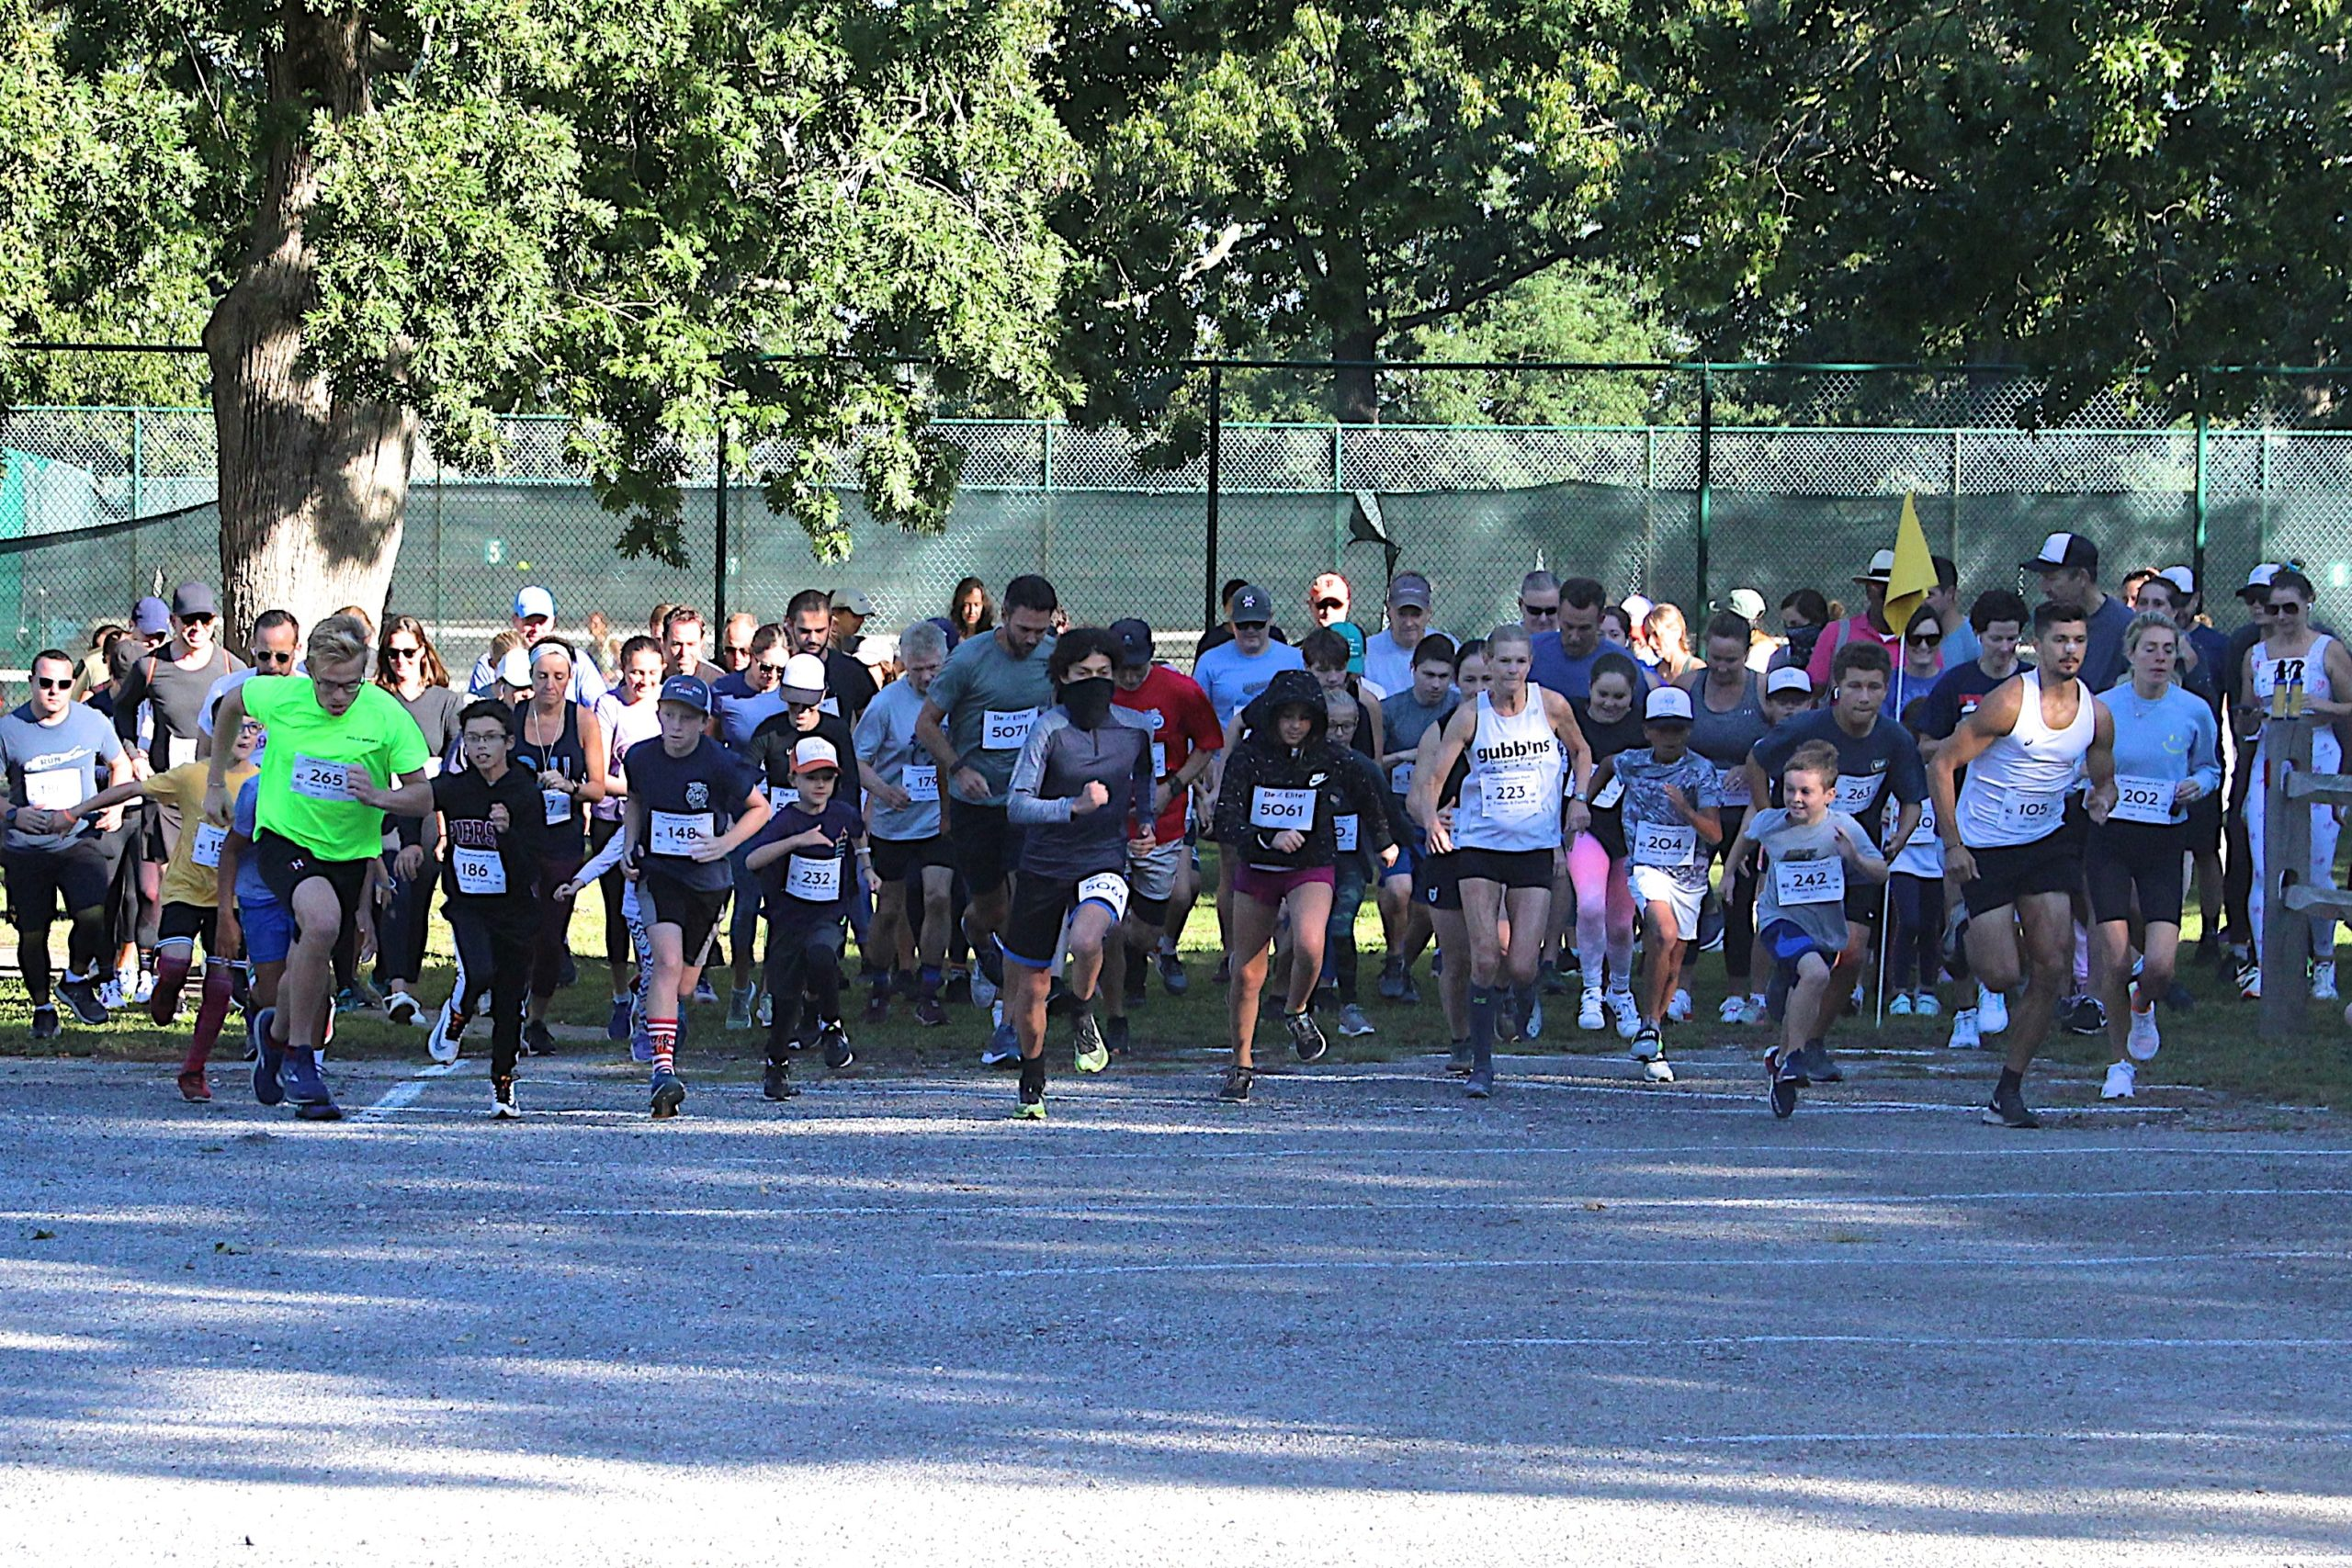 Runners start the inaugural Runners enjoy the first ever Mashashimuet Park Friends and Family 5K Run Saturday morning in Sag Harbor.